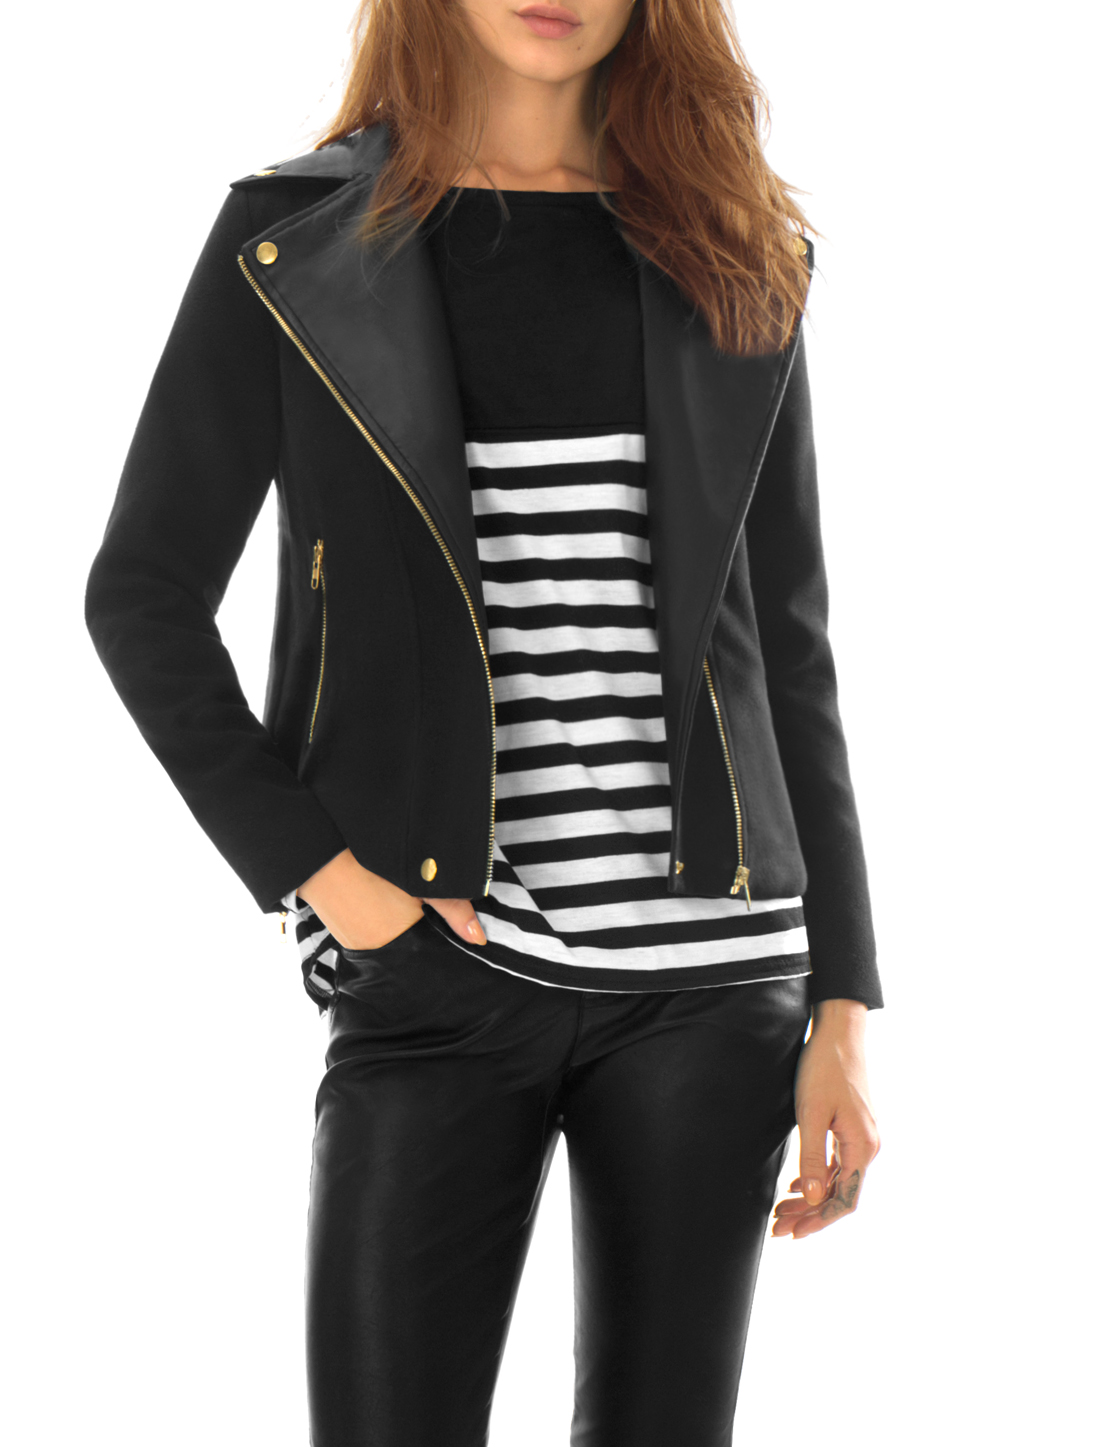 Women Asymmetrical Zipper Front PU Panel Worsted Jacket Black XS